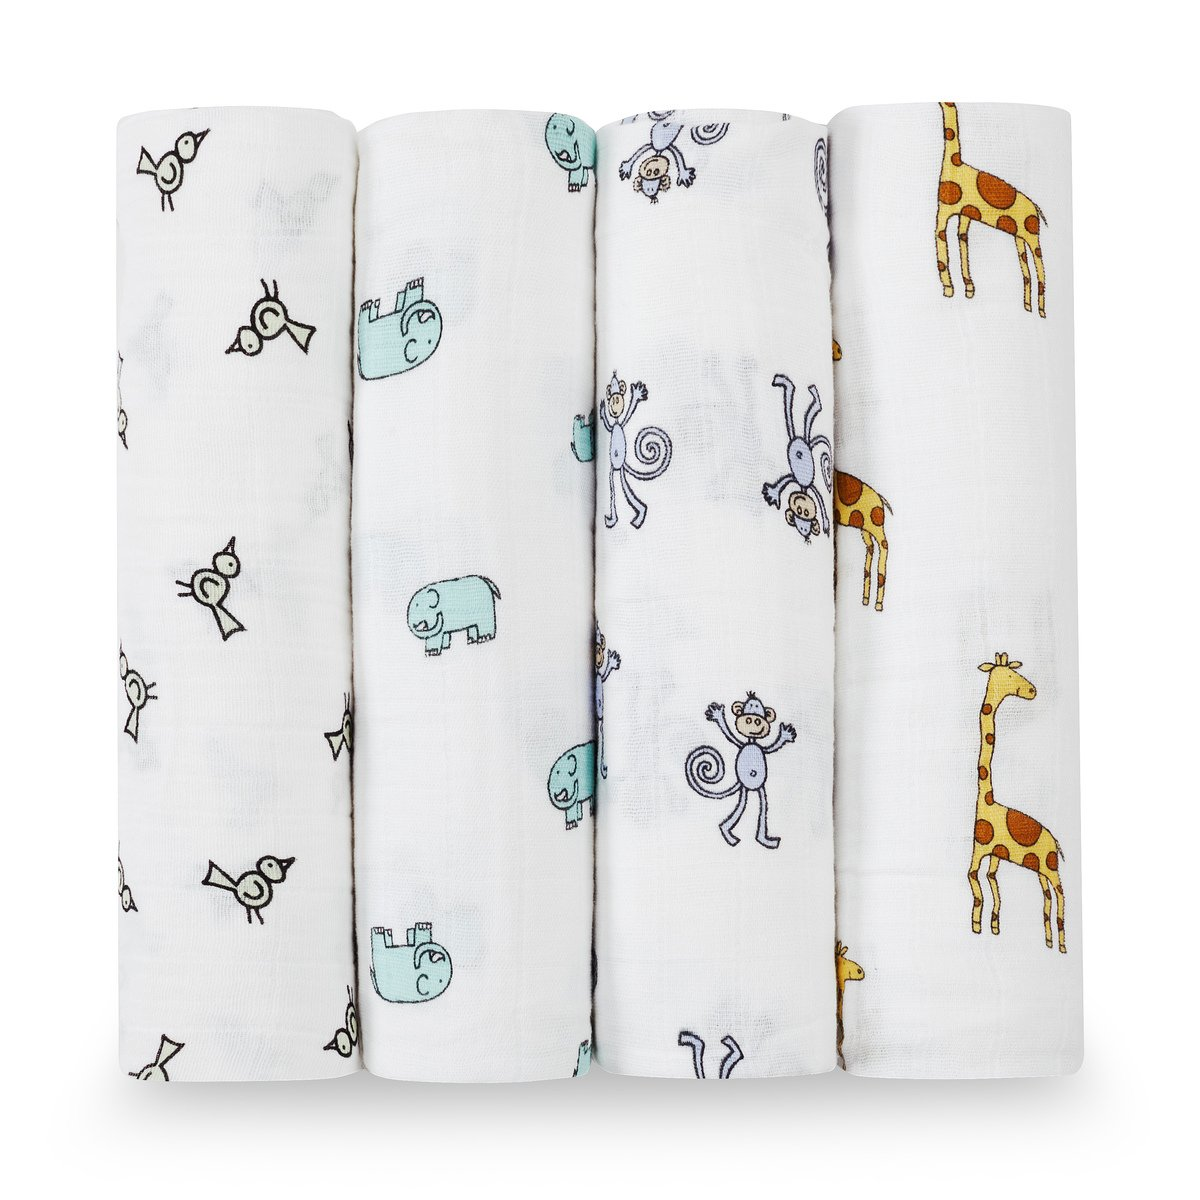 aden + anais Swaddle Blanket - baby blankets